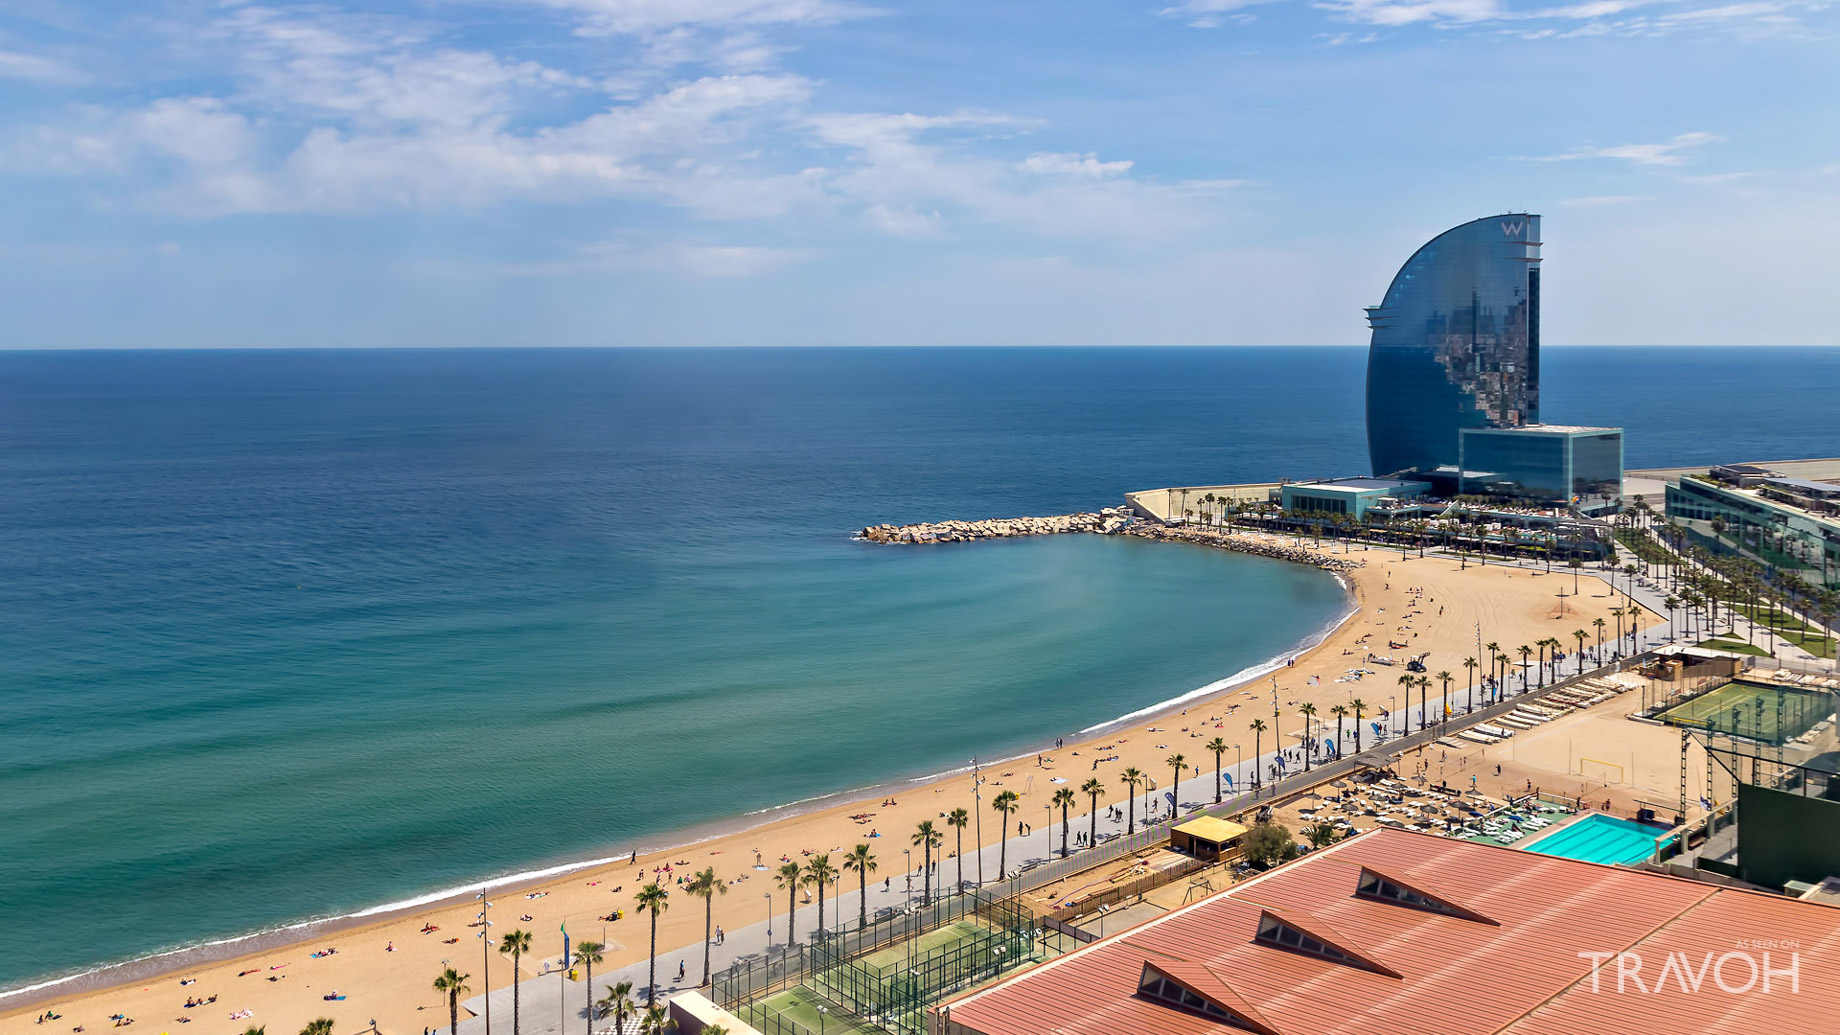 Sant Sebastia Beach - Exploring 10 of the Top Beaches in Barcelona, Spain